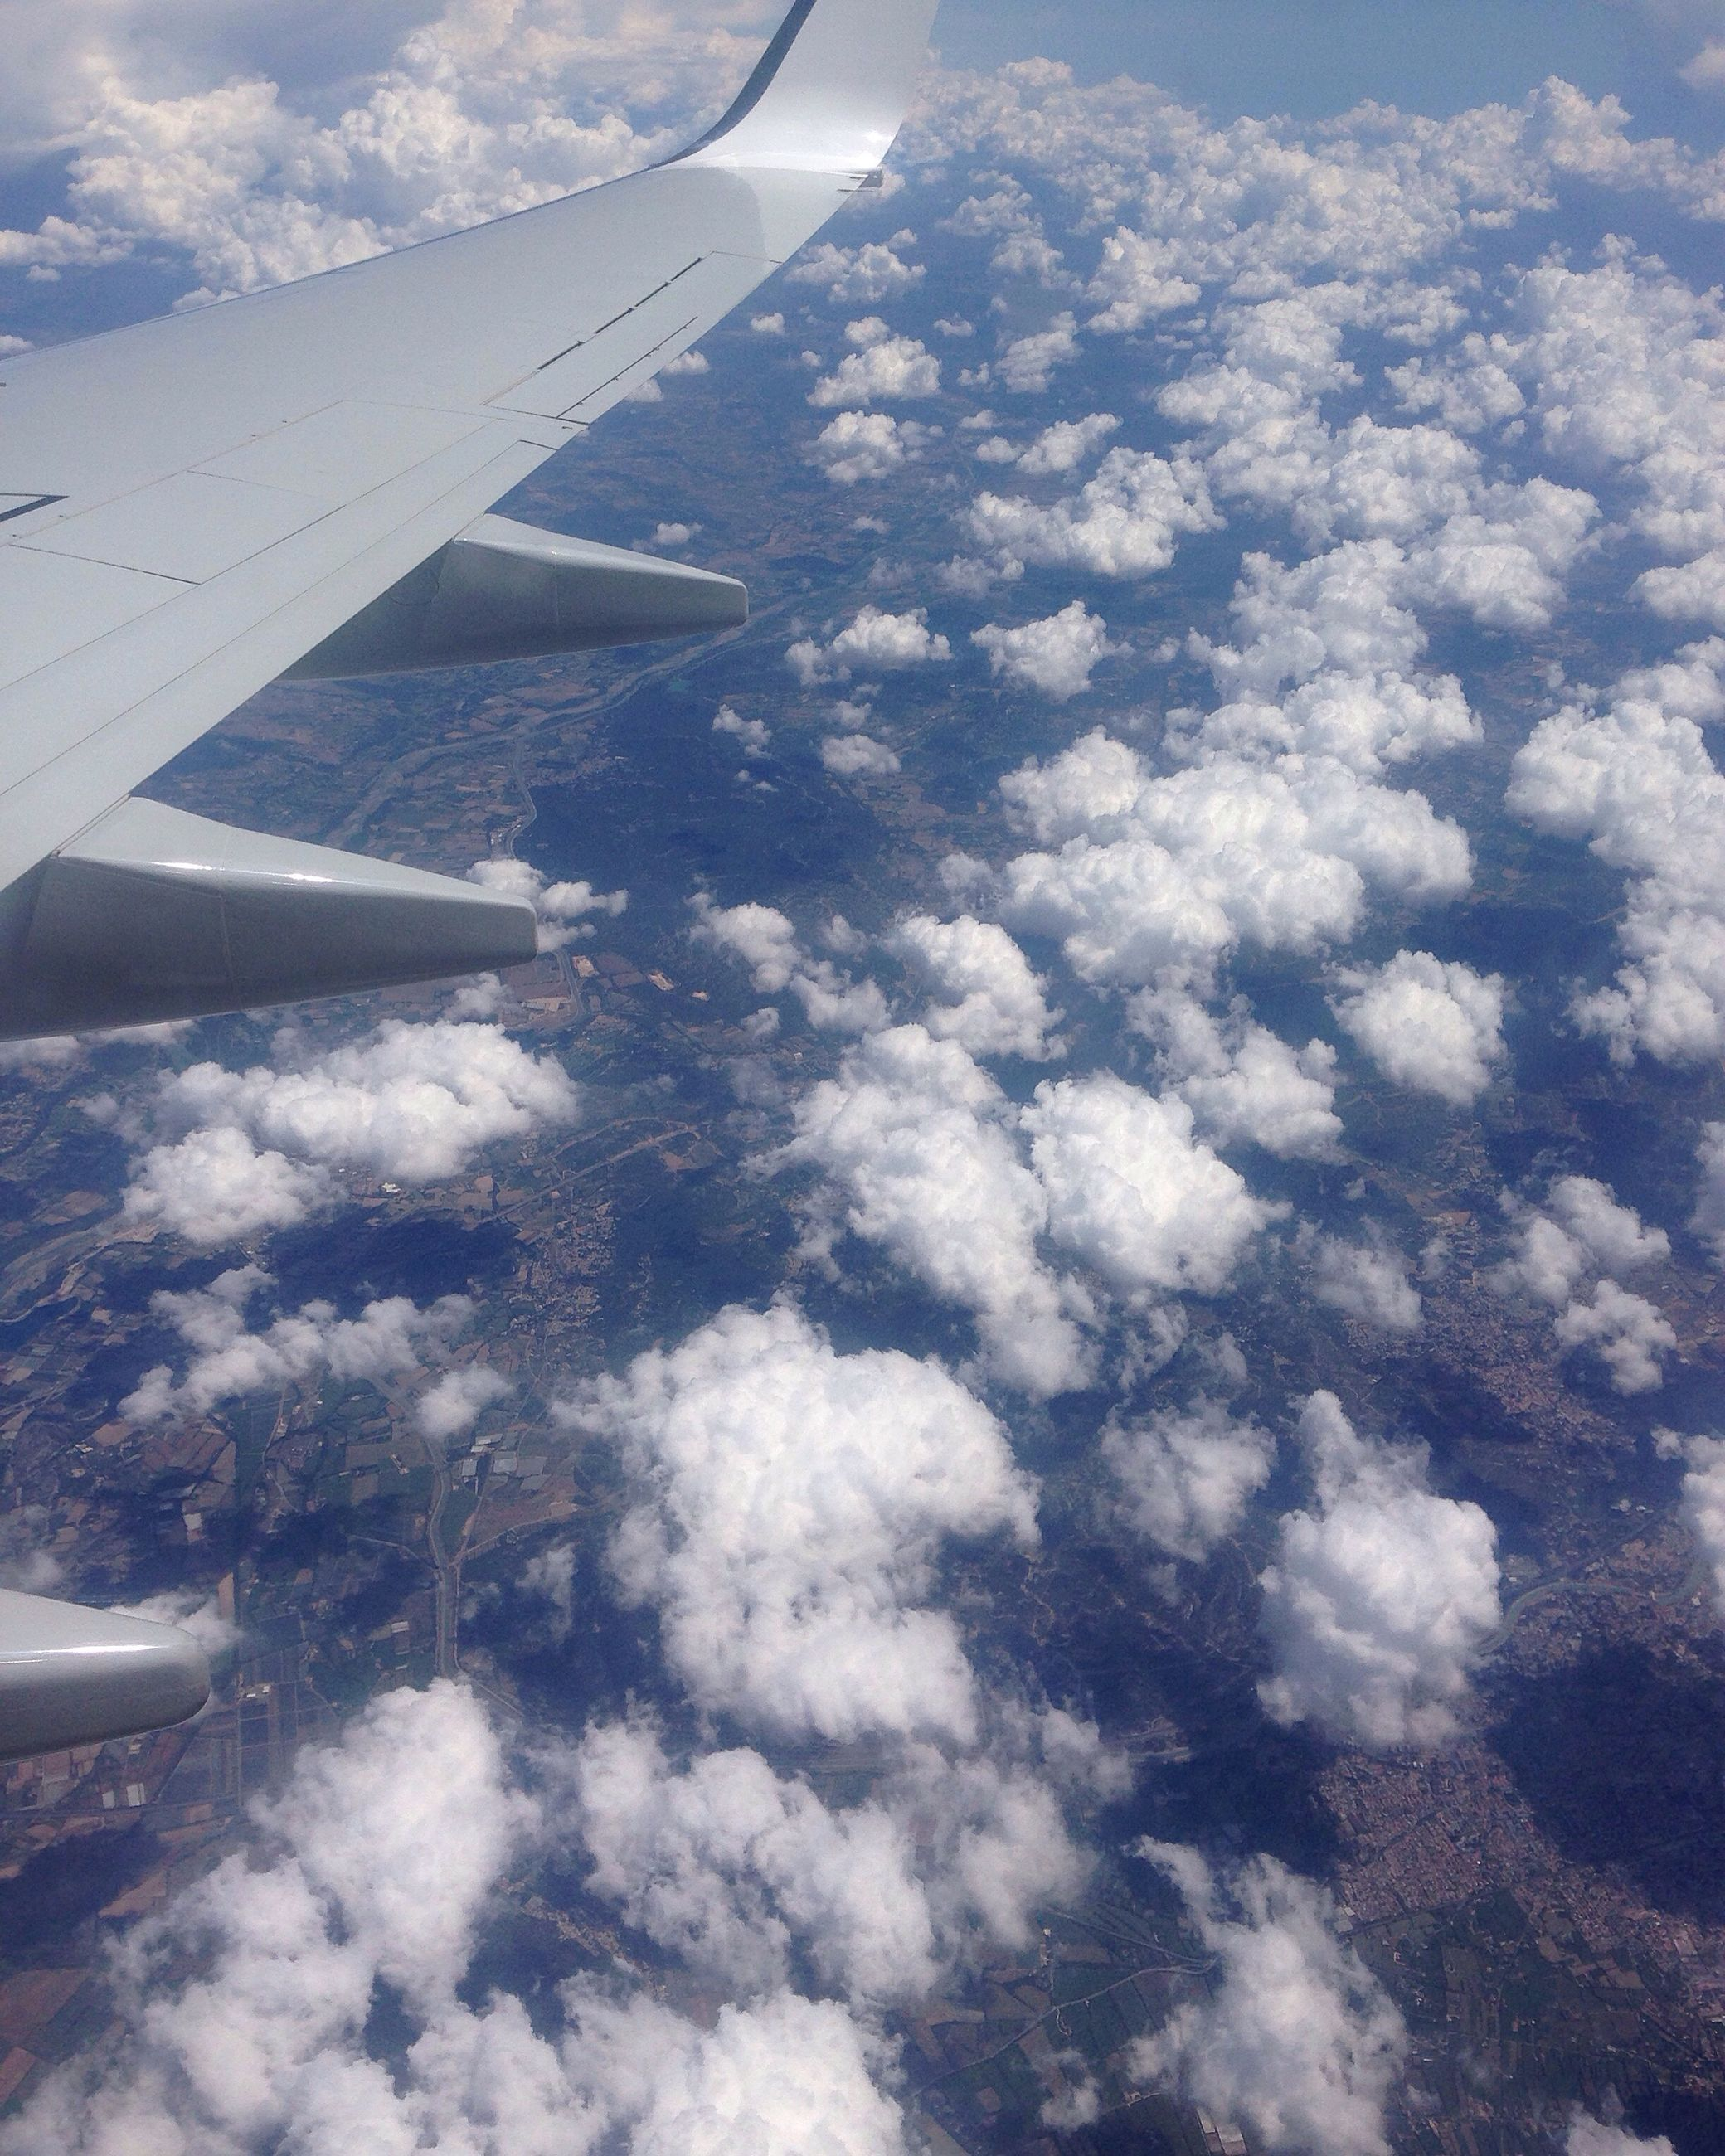 transportation, mode of transport, aircraft wing, flying, air vehicle, airplane, cropped, part of, aerial view, journey, travel, landscape, mid-air, scenics, mountain, on the move, aeroplane, cloud - sky, cloud, cloudscape, day, tranquil scene, nature, beauty in nature, sky, airplane wing, mountain range, sea, majestic, blue, snowcapped mountain, solitude, tranquility, non-urban scene, outdoors